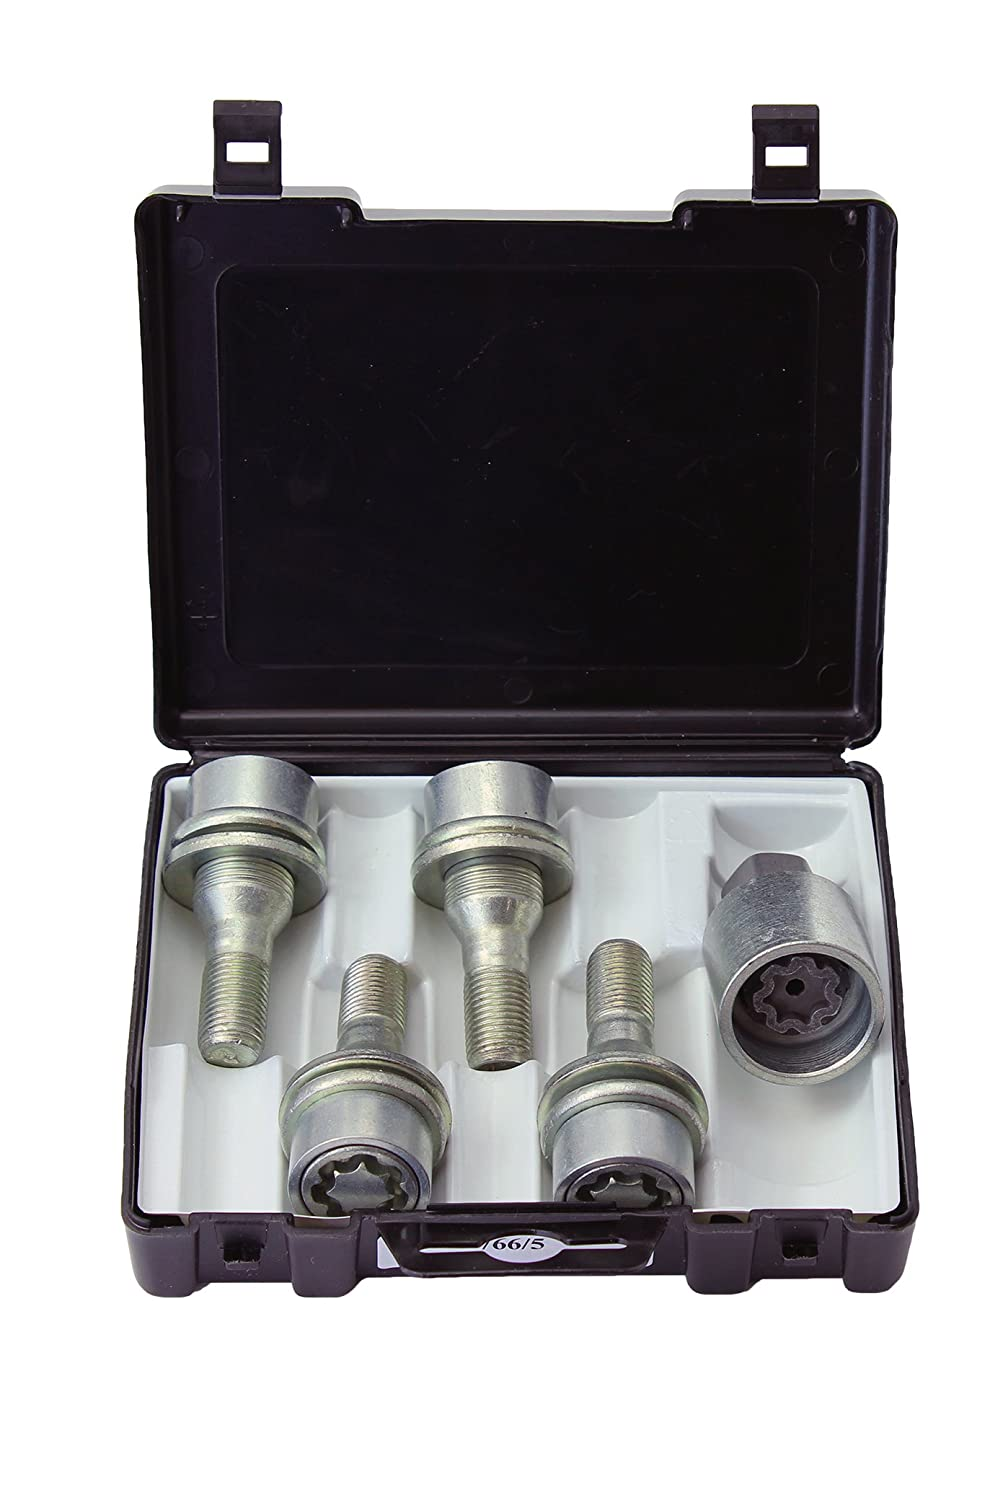 FLAT seat Set of 4 and removal key Anti-theft protection 766//5 Heyner StilBlock locking wheel BOLTS for M12x1.25 x 23.5